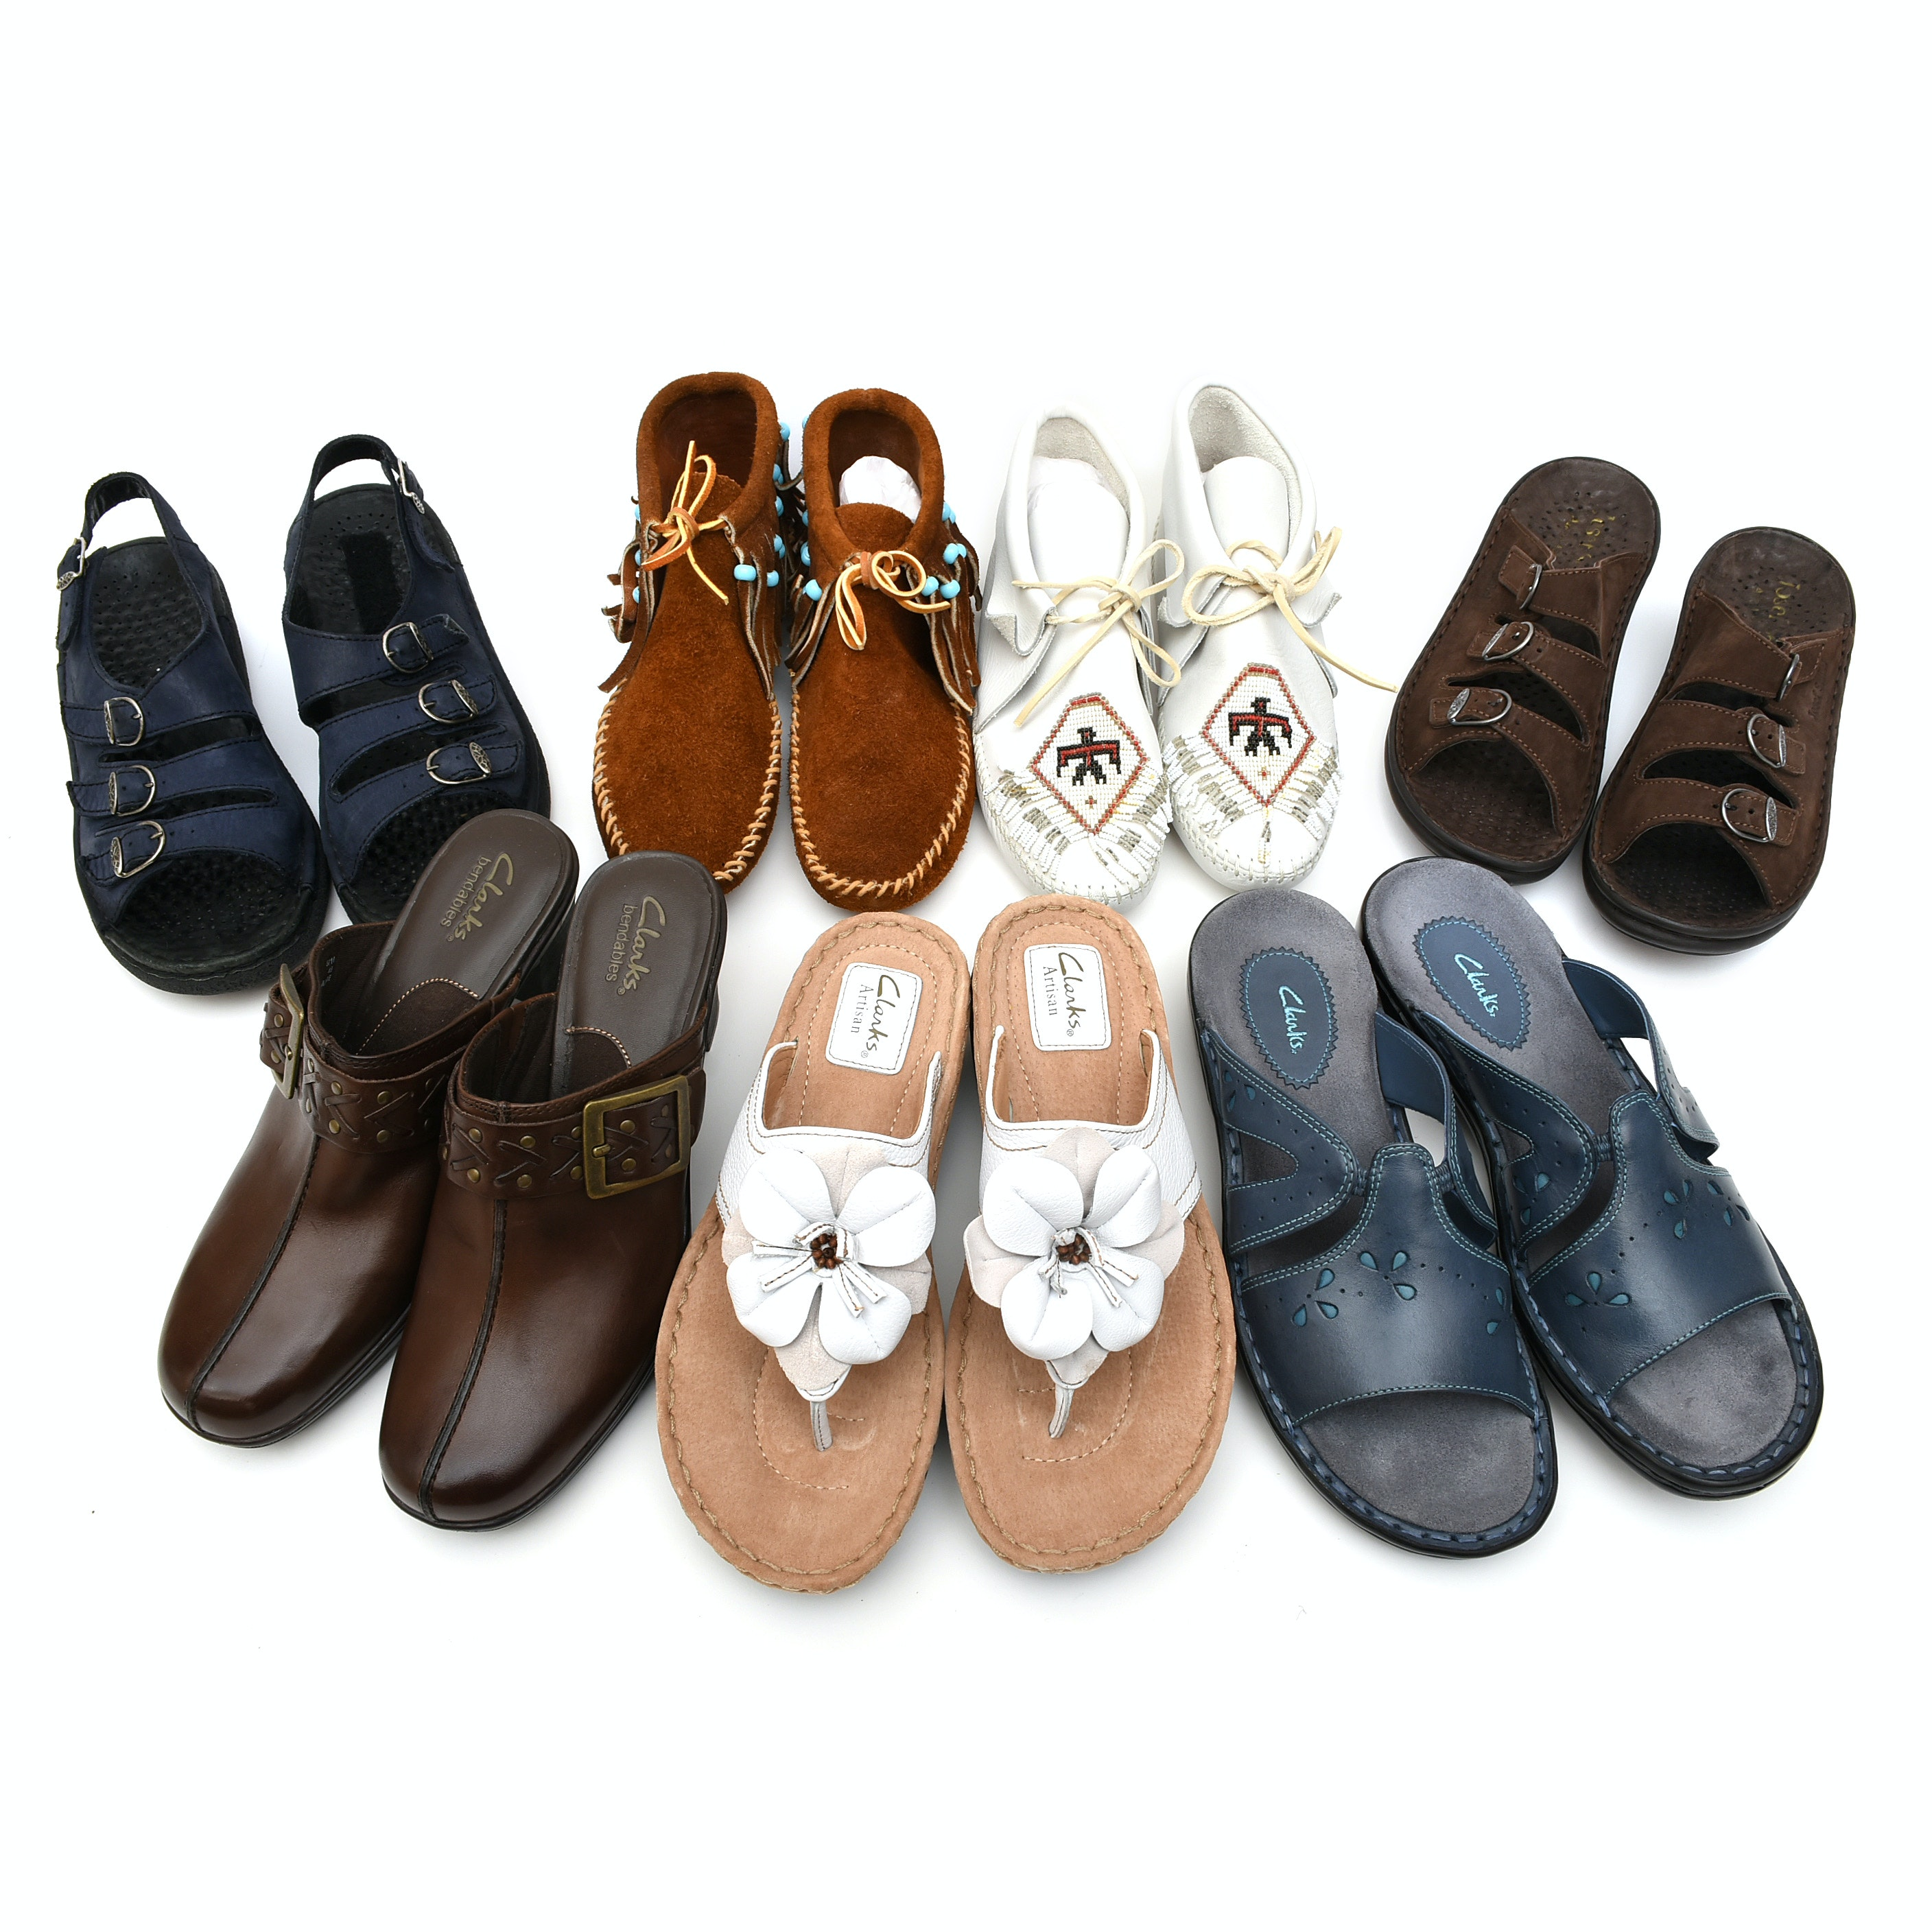 Seven Pairs of Women's Casual Shoes and Moccasins